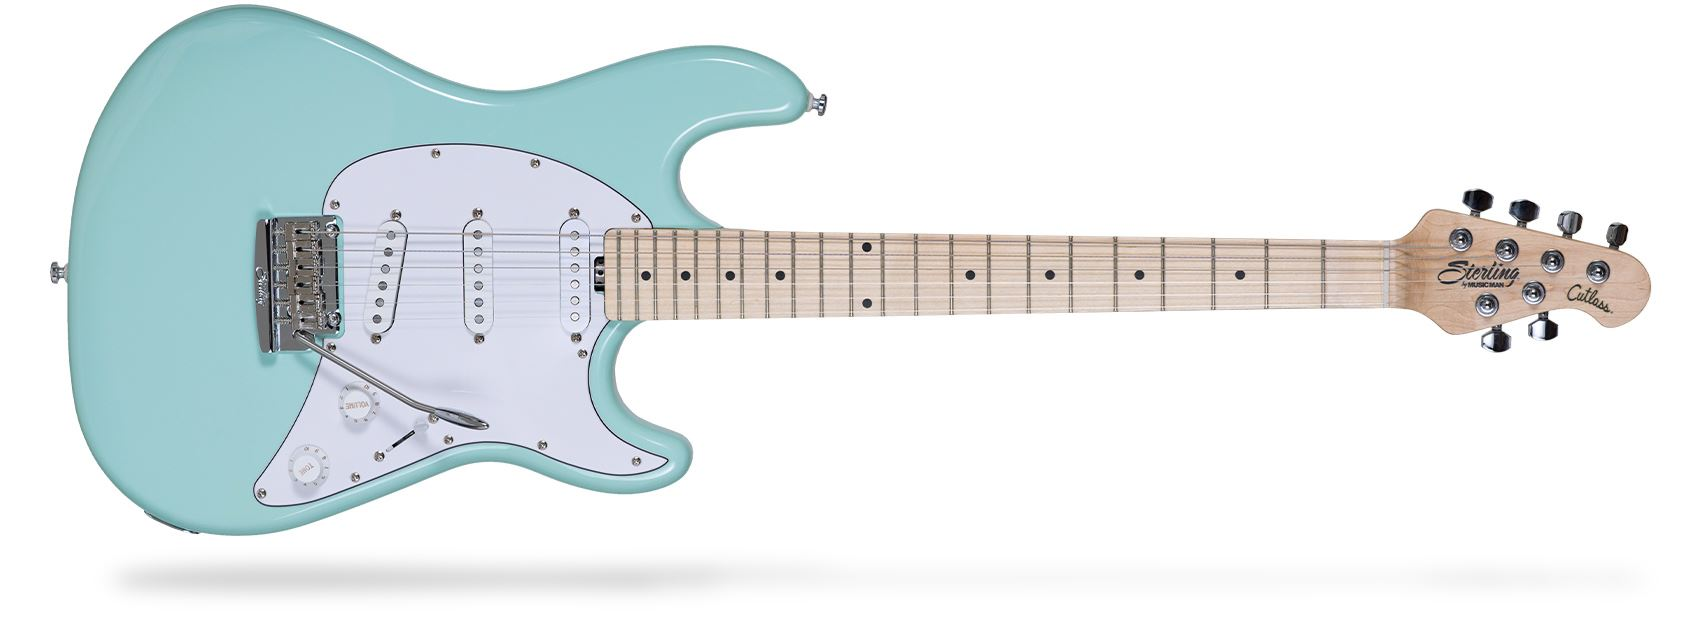 Awesome Electric Guitar Plans Evh Ernie Ball Plans Image Collection ...